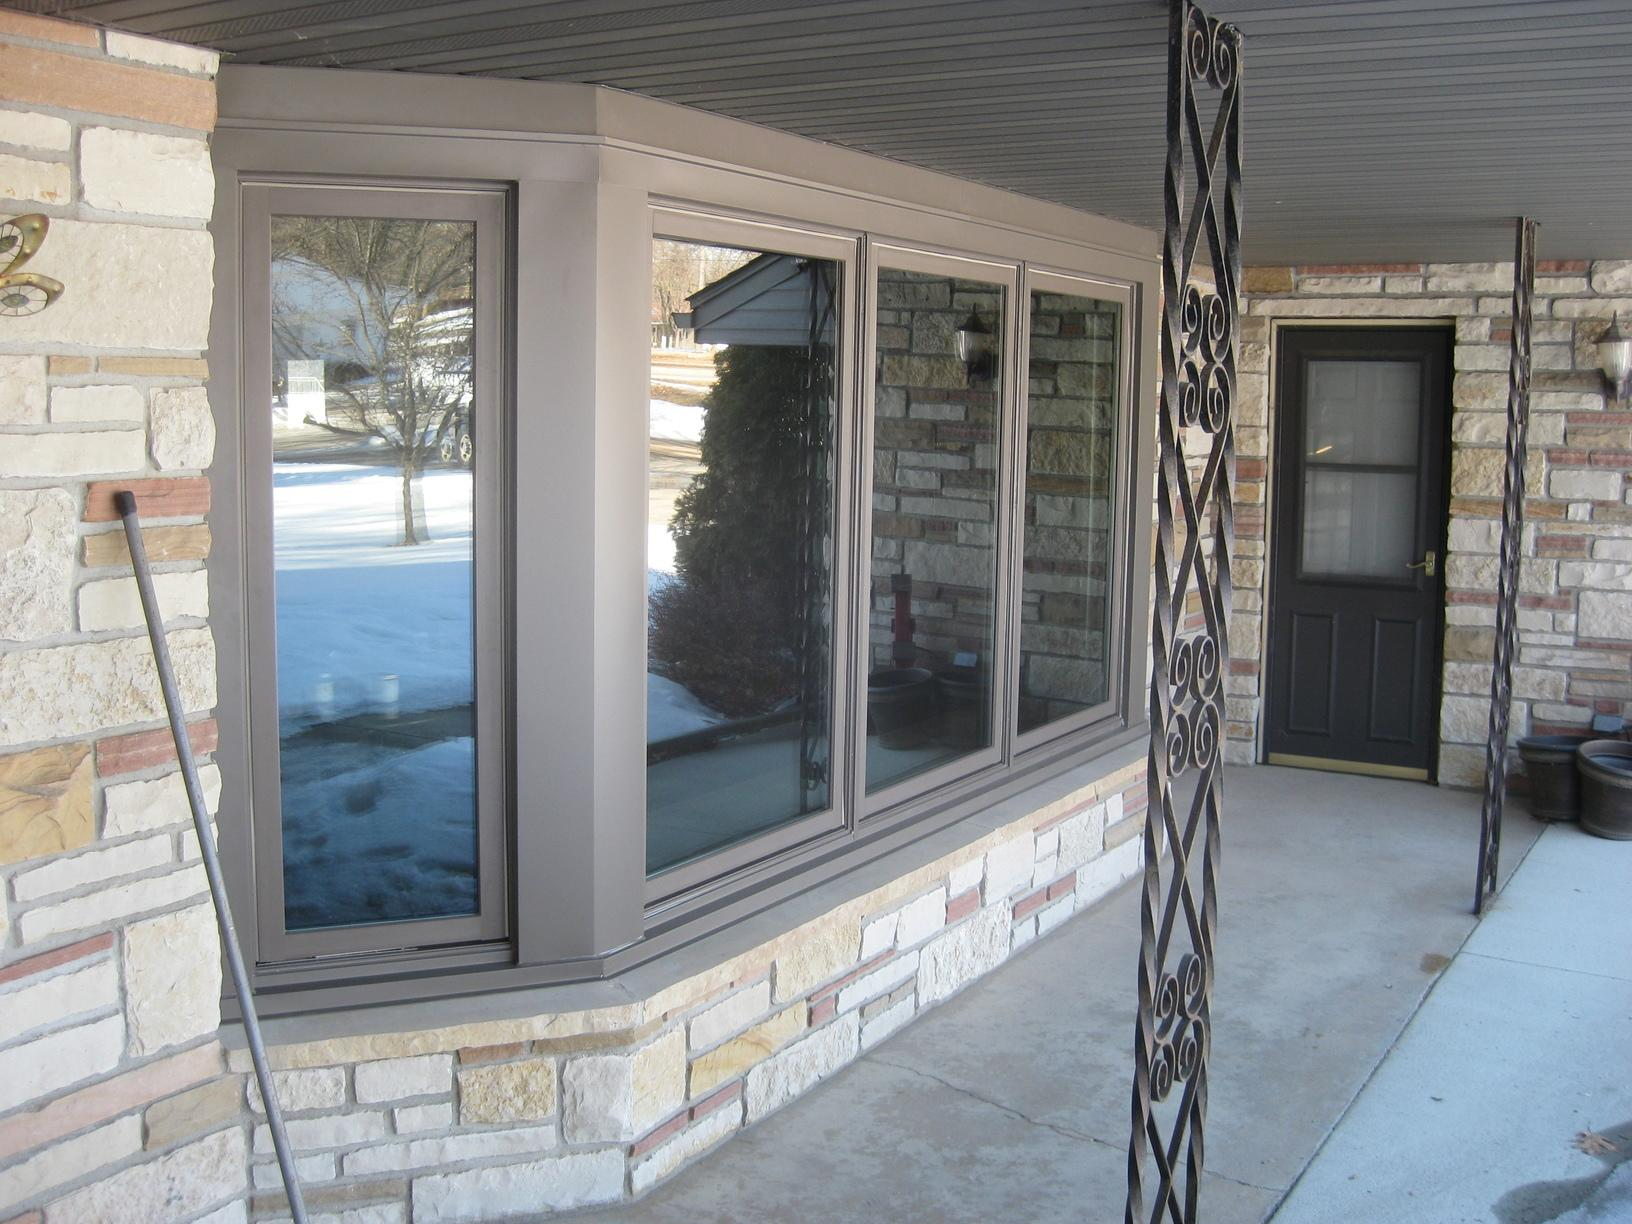 Renewal By Andersen Windows - After Photo